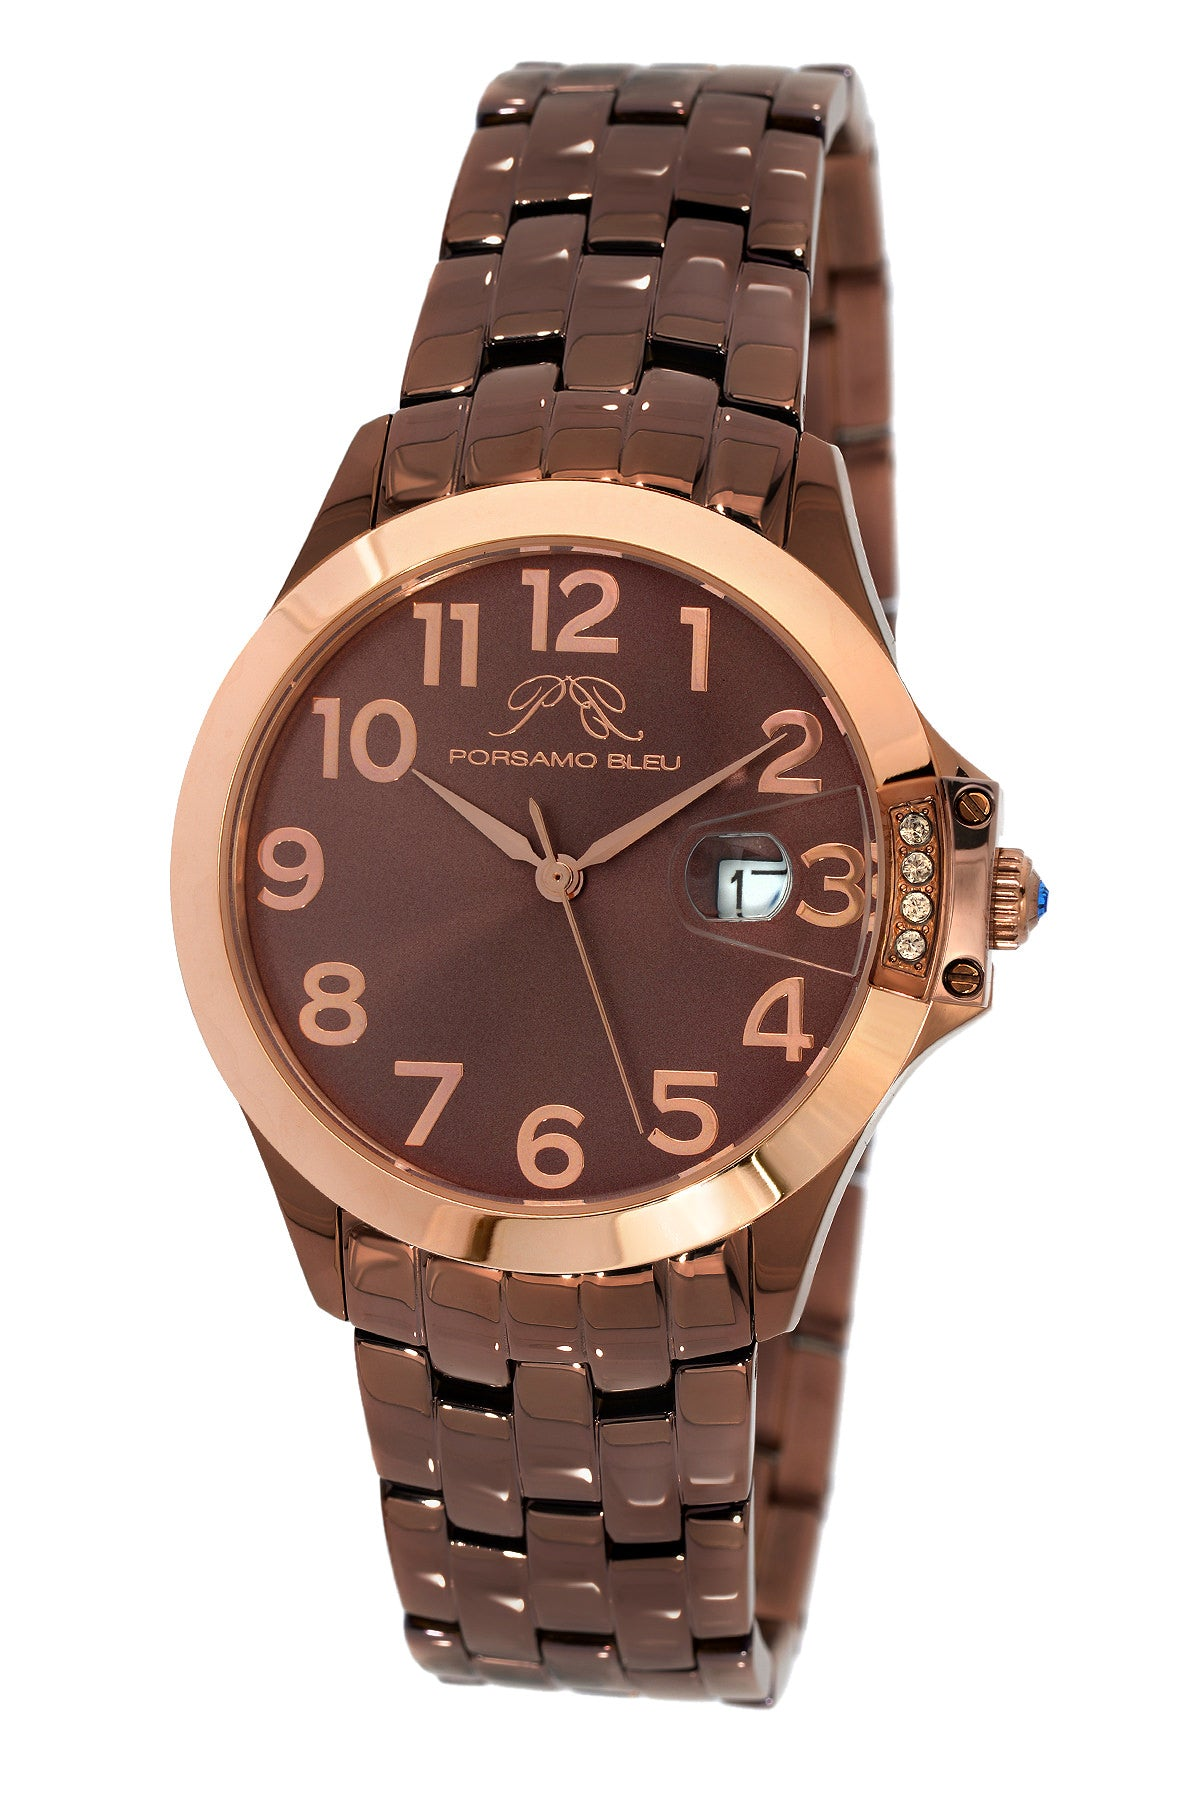 Porsamo Bleu Olivia luxury women's stainless steel watch, rose, brown 984BOLS